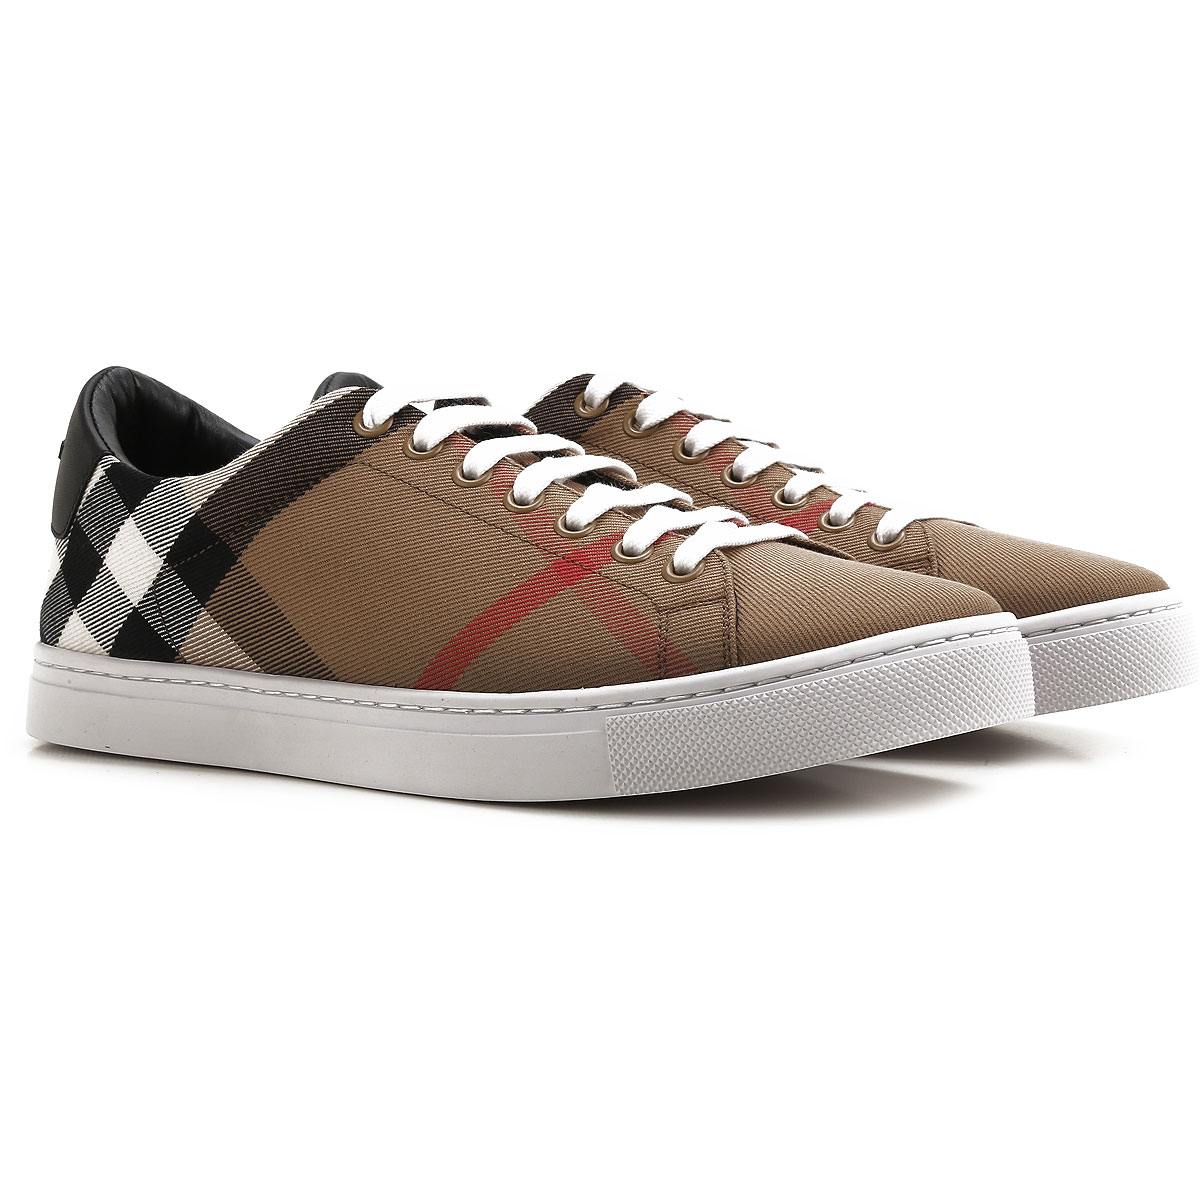 Burberry Shoes Outlet Uk